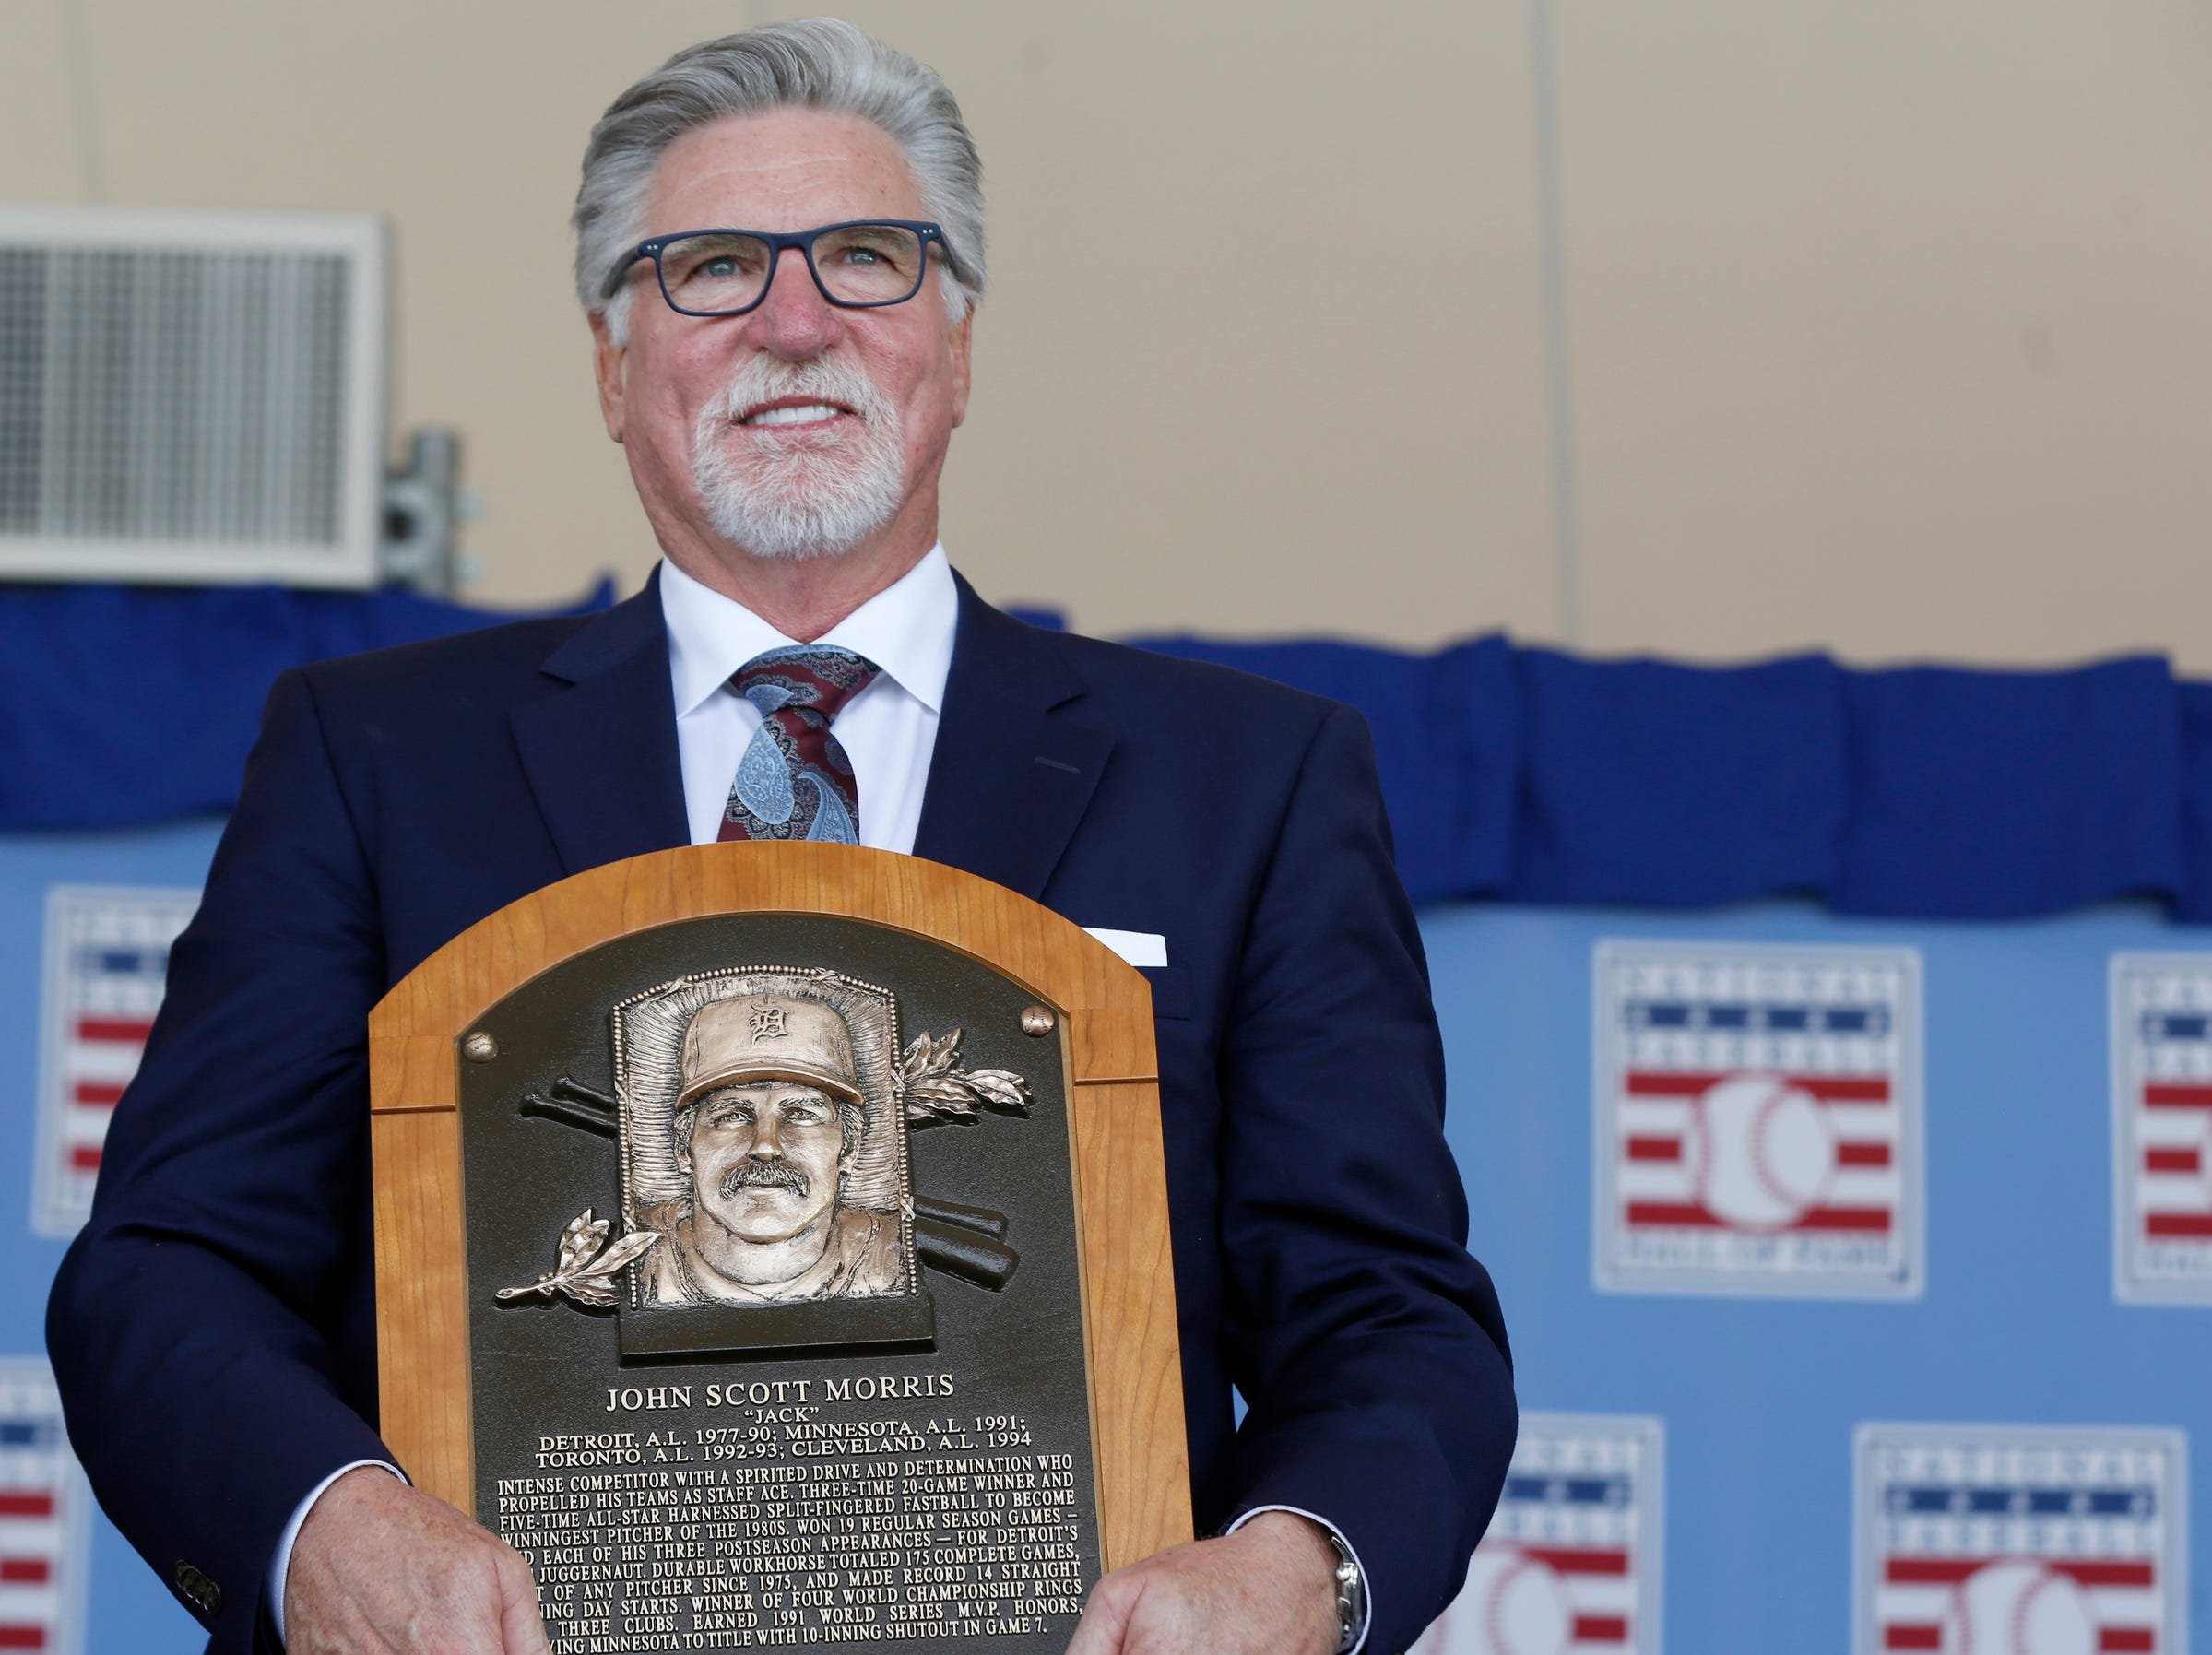 Tigers great Jack Morris is all smiles while holding his Baseball Hall of Fame plaque and looking out at the crowd at the Clark Sports Center after the National Baseball Hall of Fame induction ceremony in Cooperstown, N.Y. on Sunday, July 29, 2018.